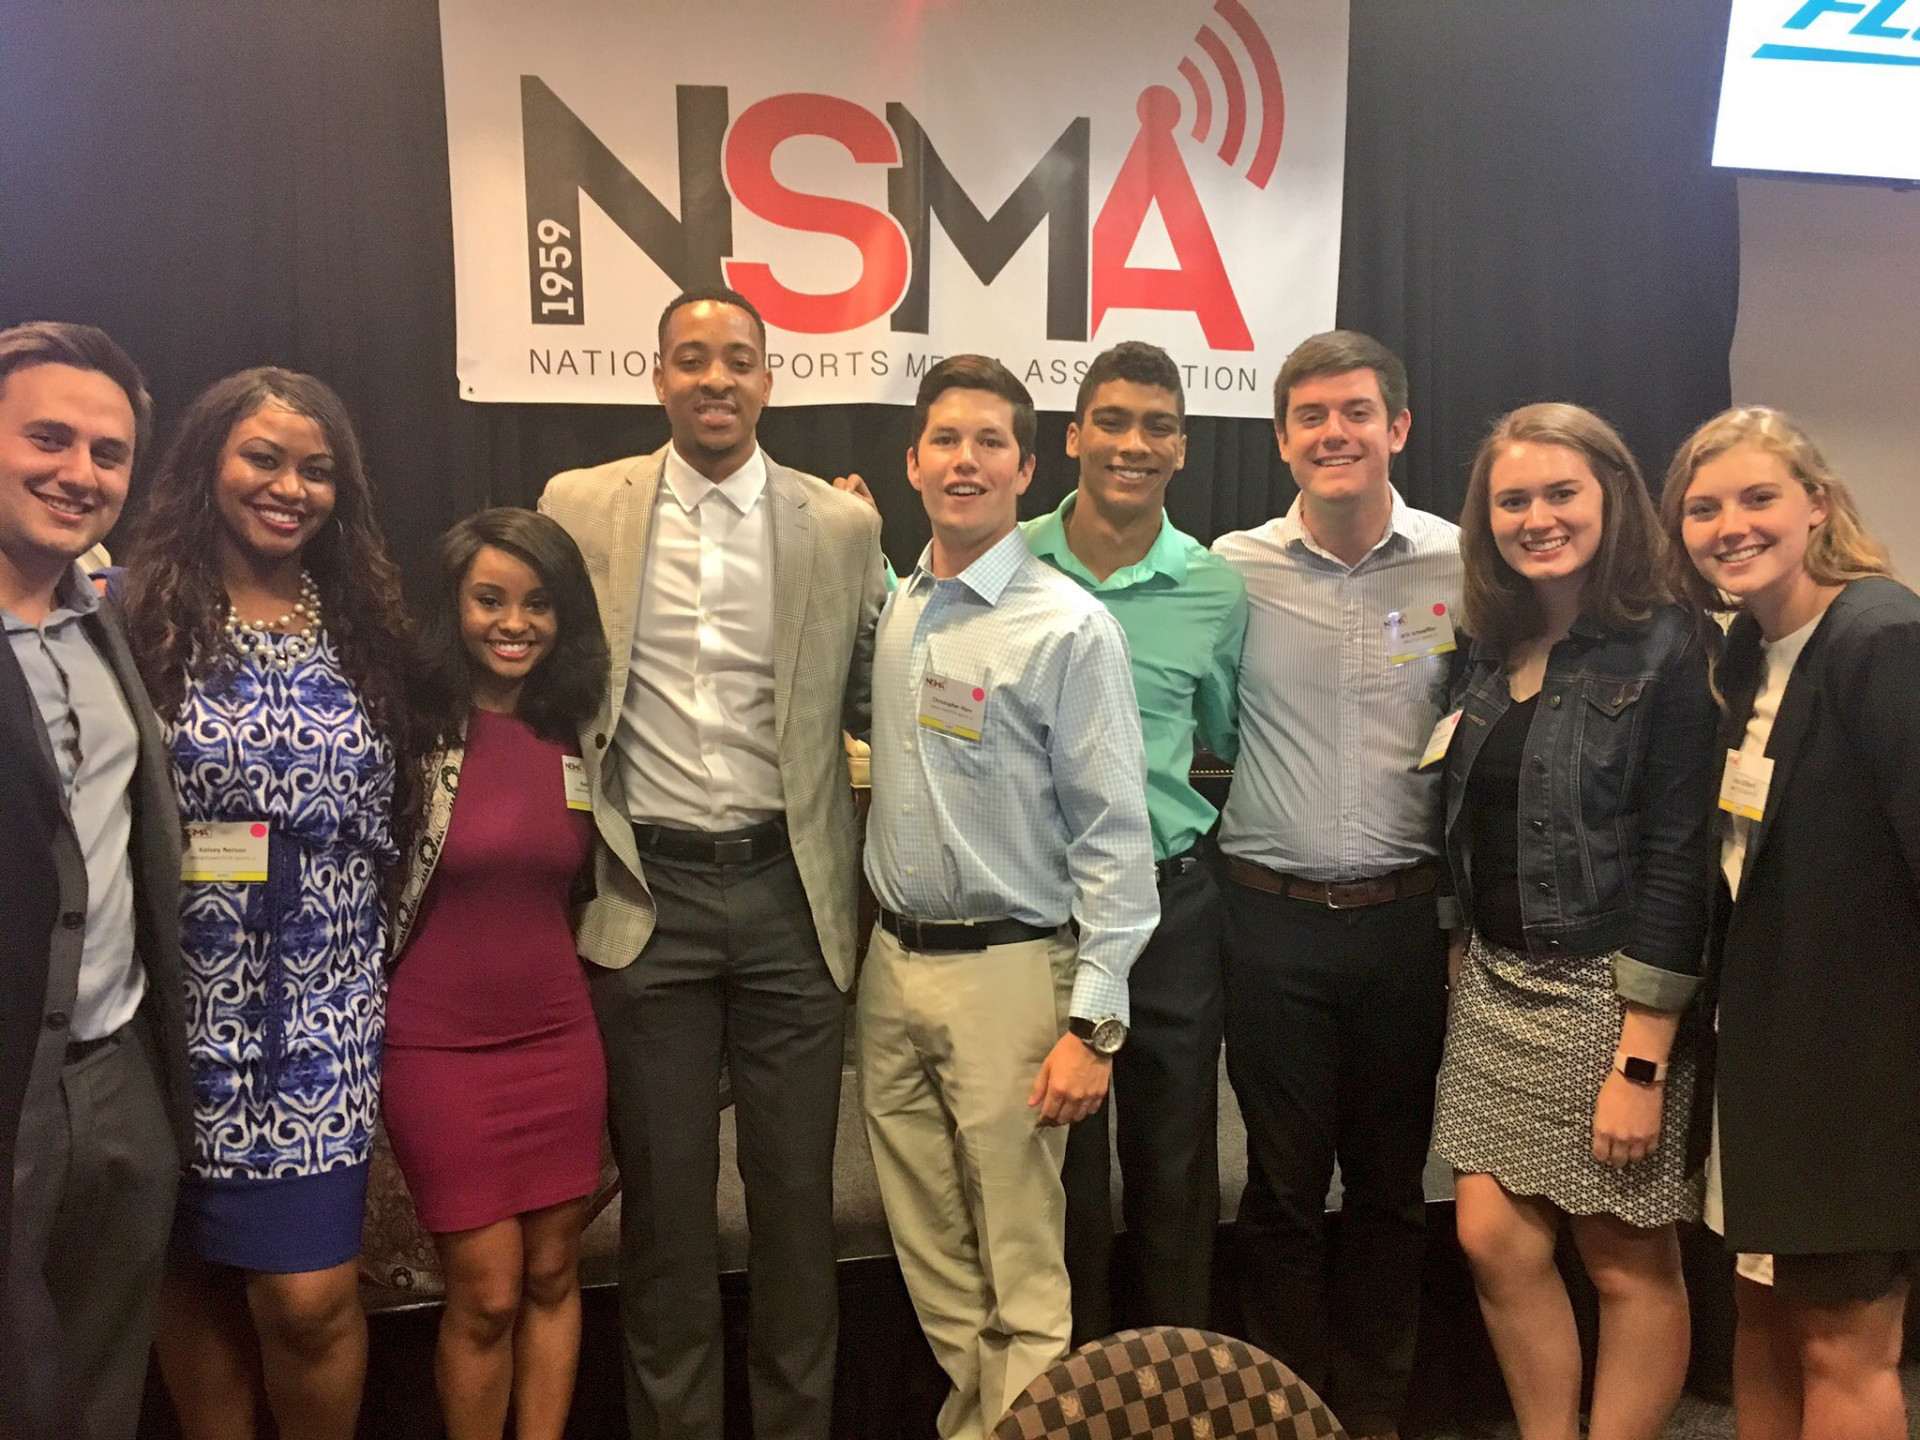 Members of FOX Sports University attended the 58th NSMA Awards Weekend, pictured here with Portland Trail Blazers' guard C.J. McCollum, who attended in his role as contributing editor to The Players' Tribune (Daniel Coston Photo)